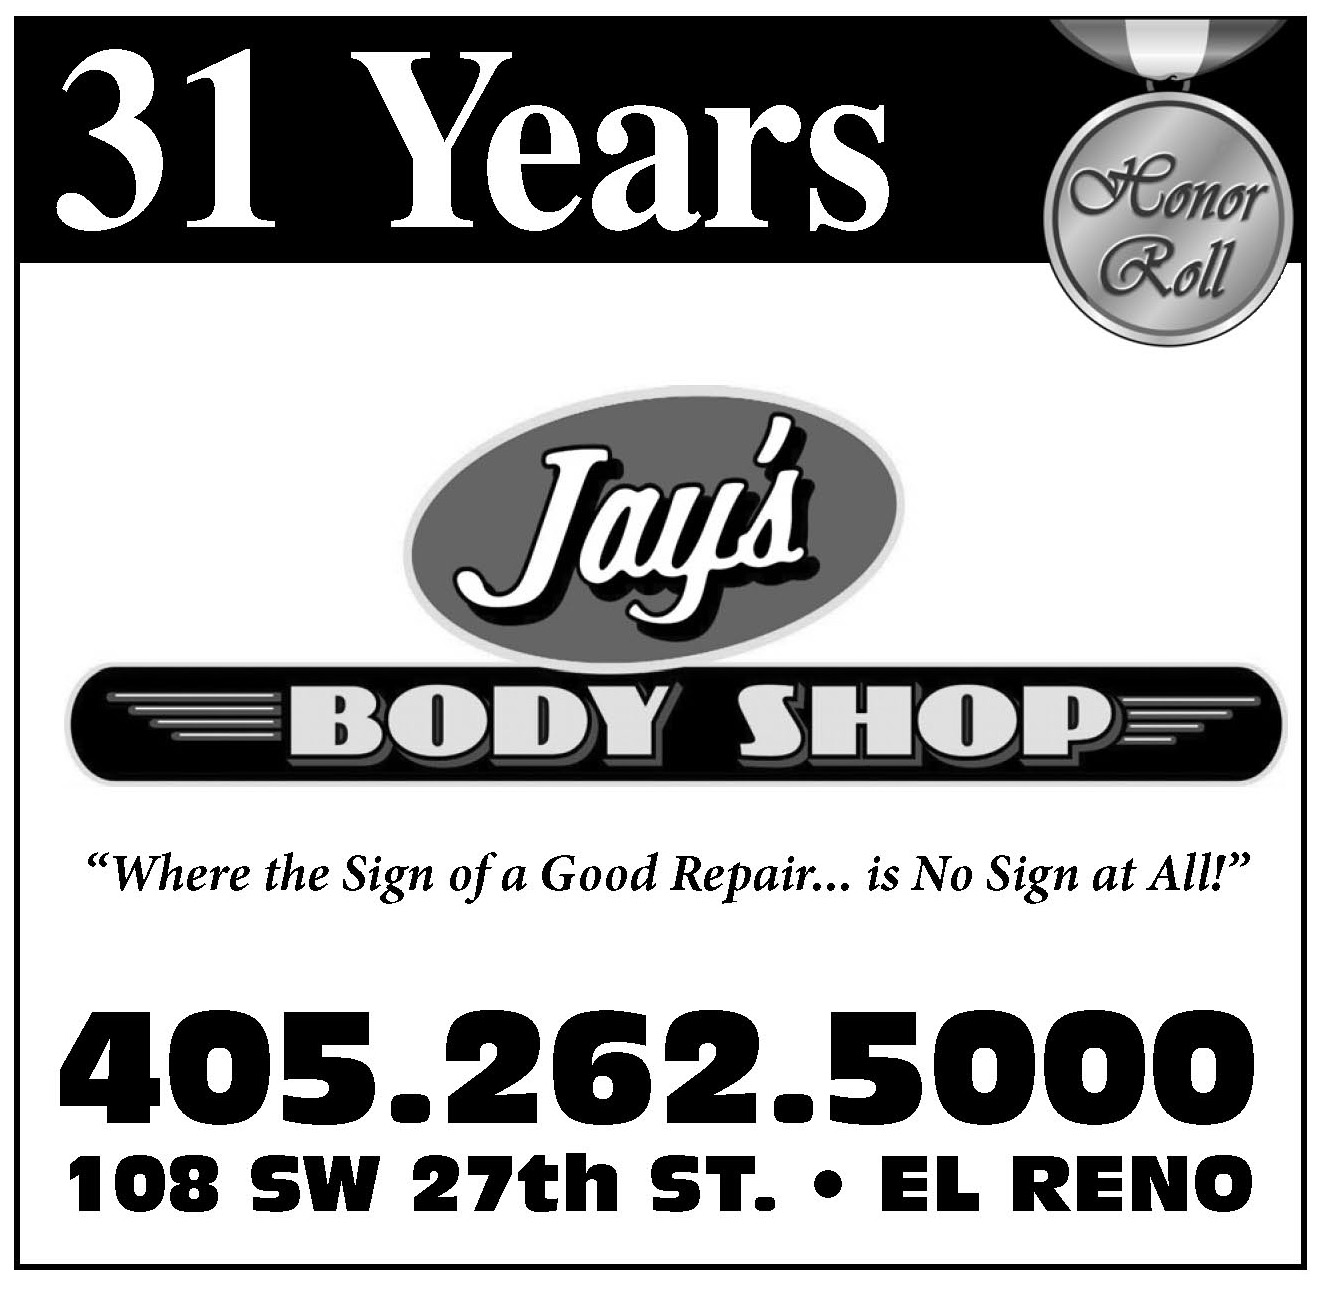 Jay's Body Shop